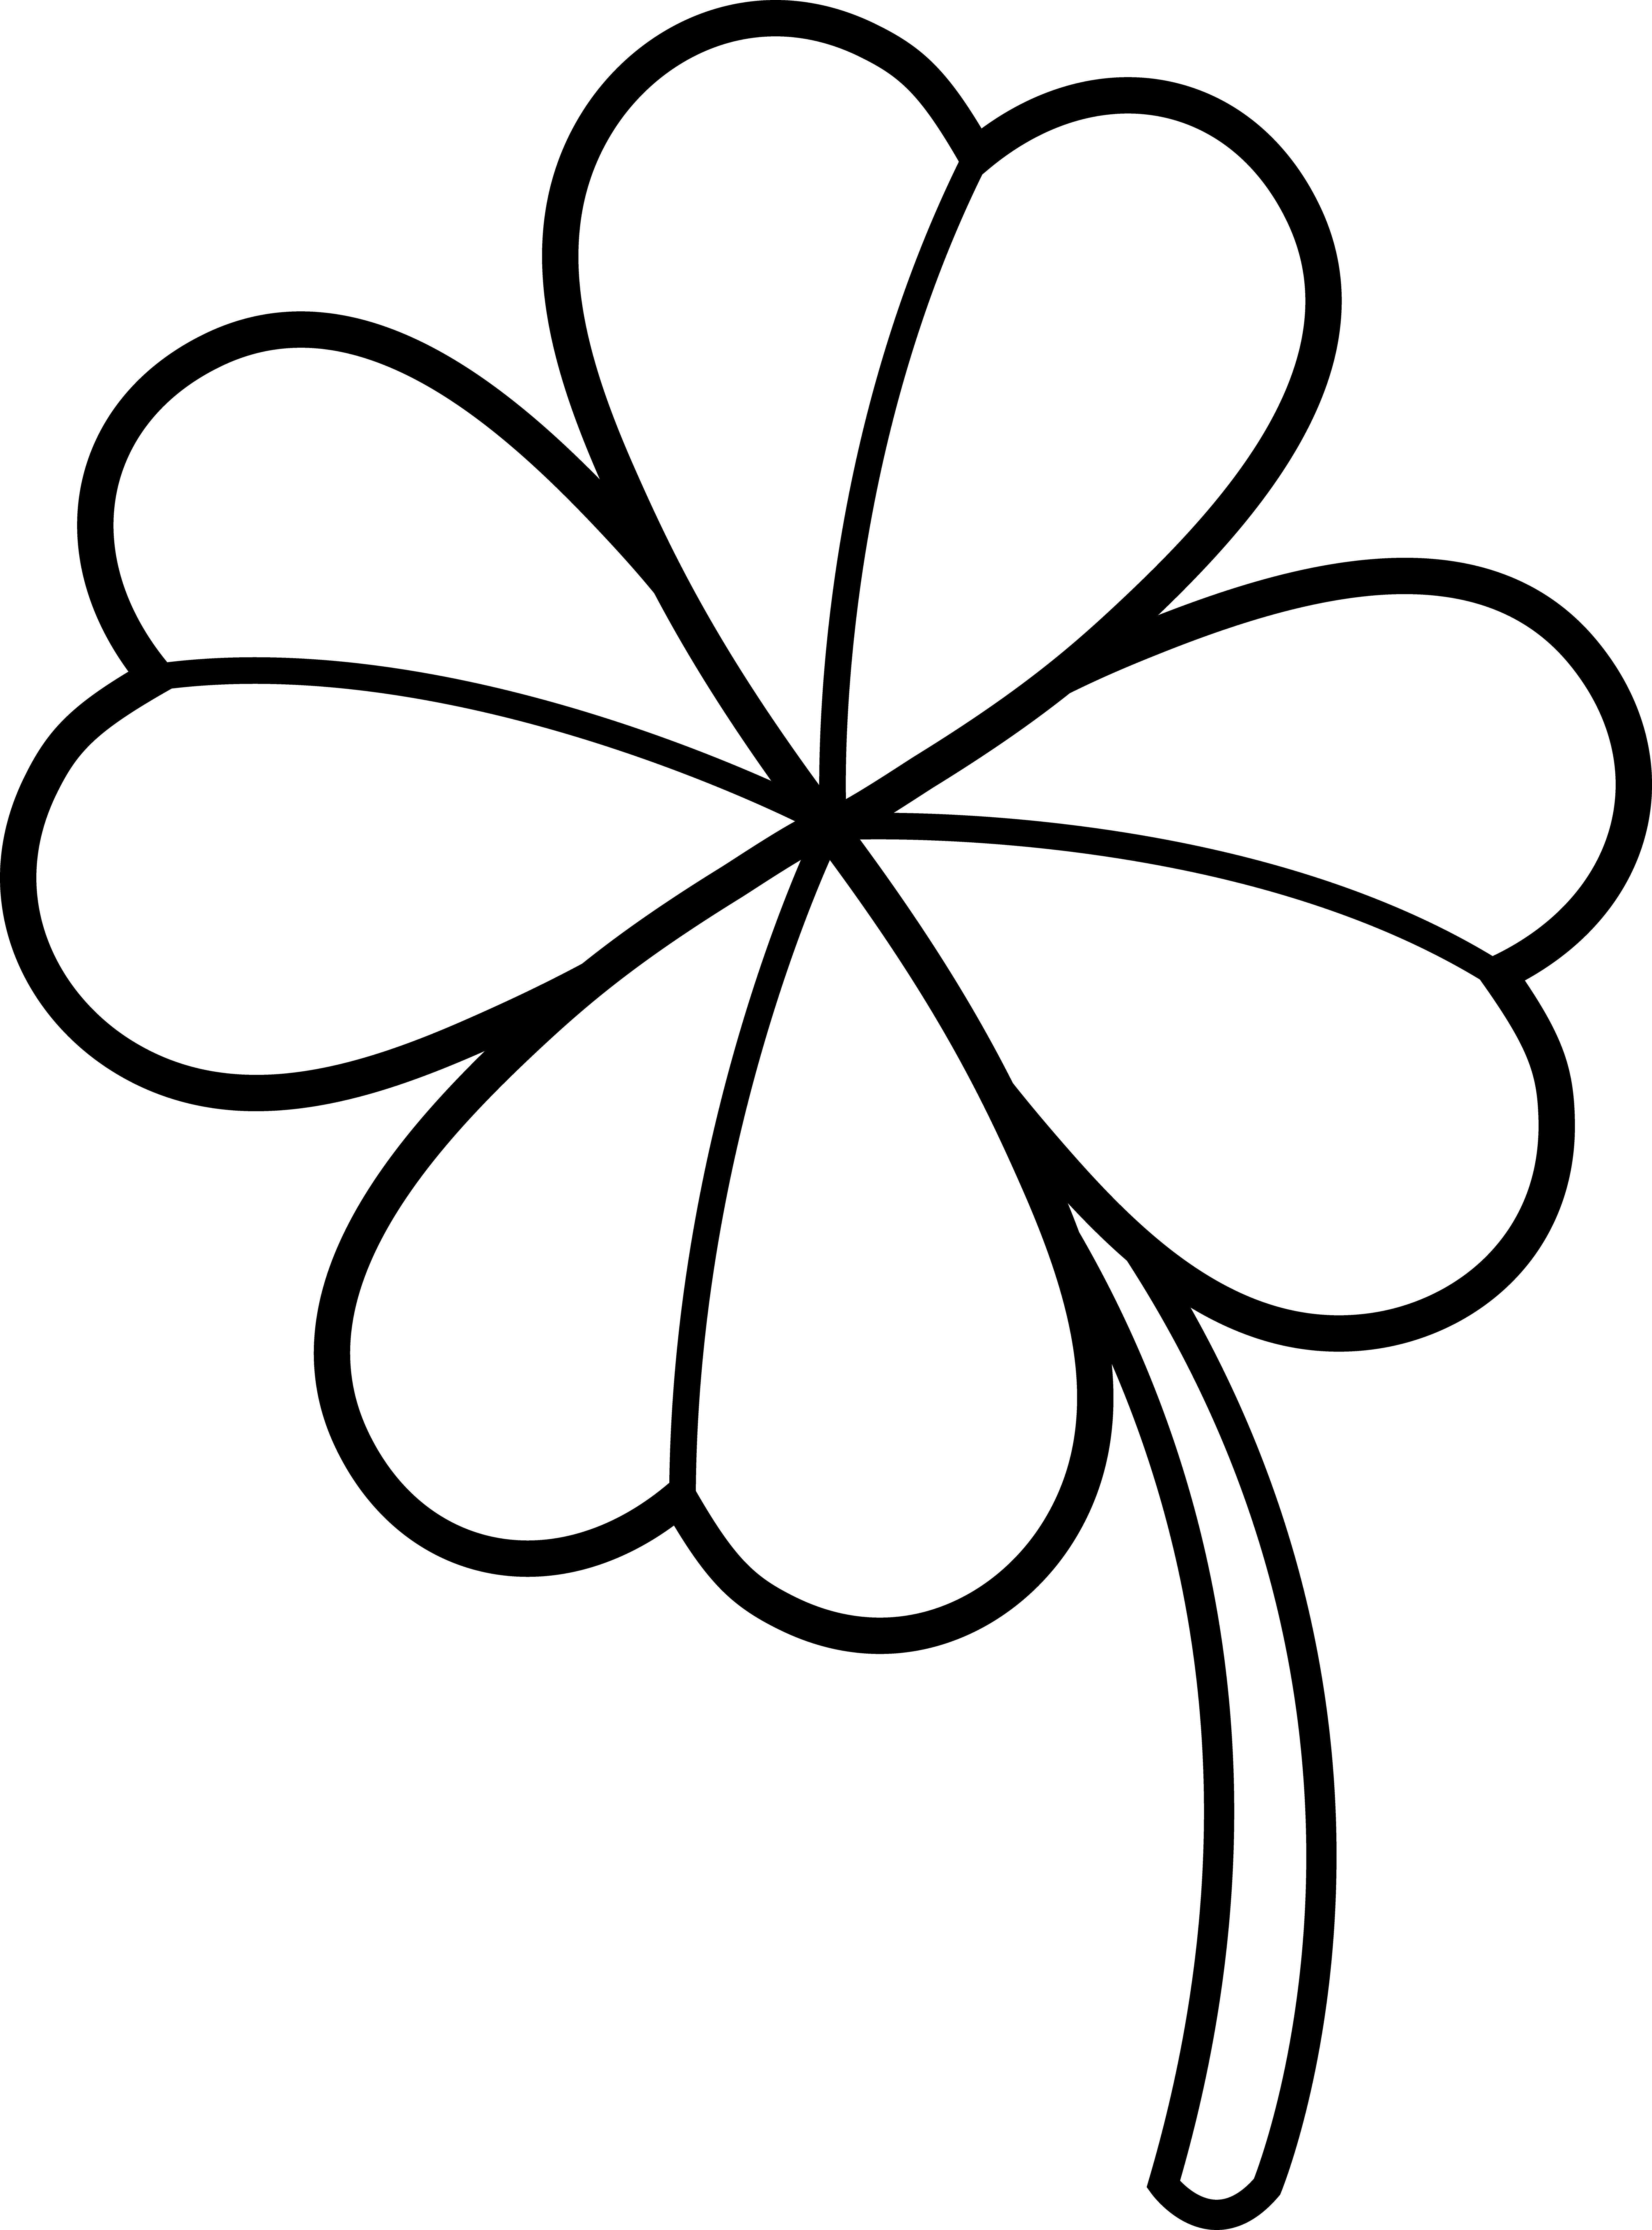 Colorable four leaf free. Clover clipart simple